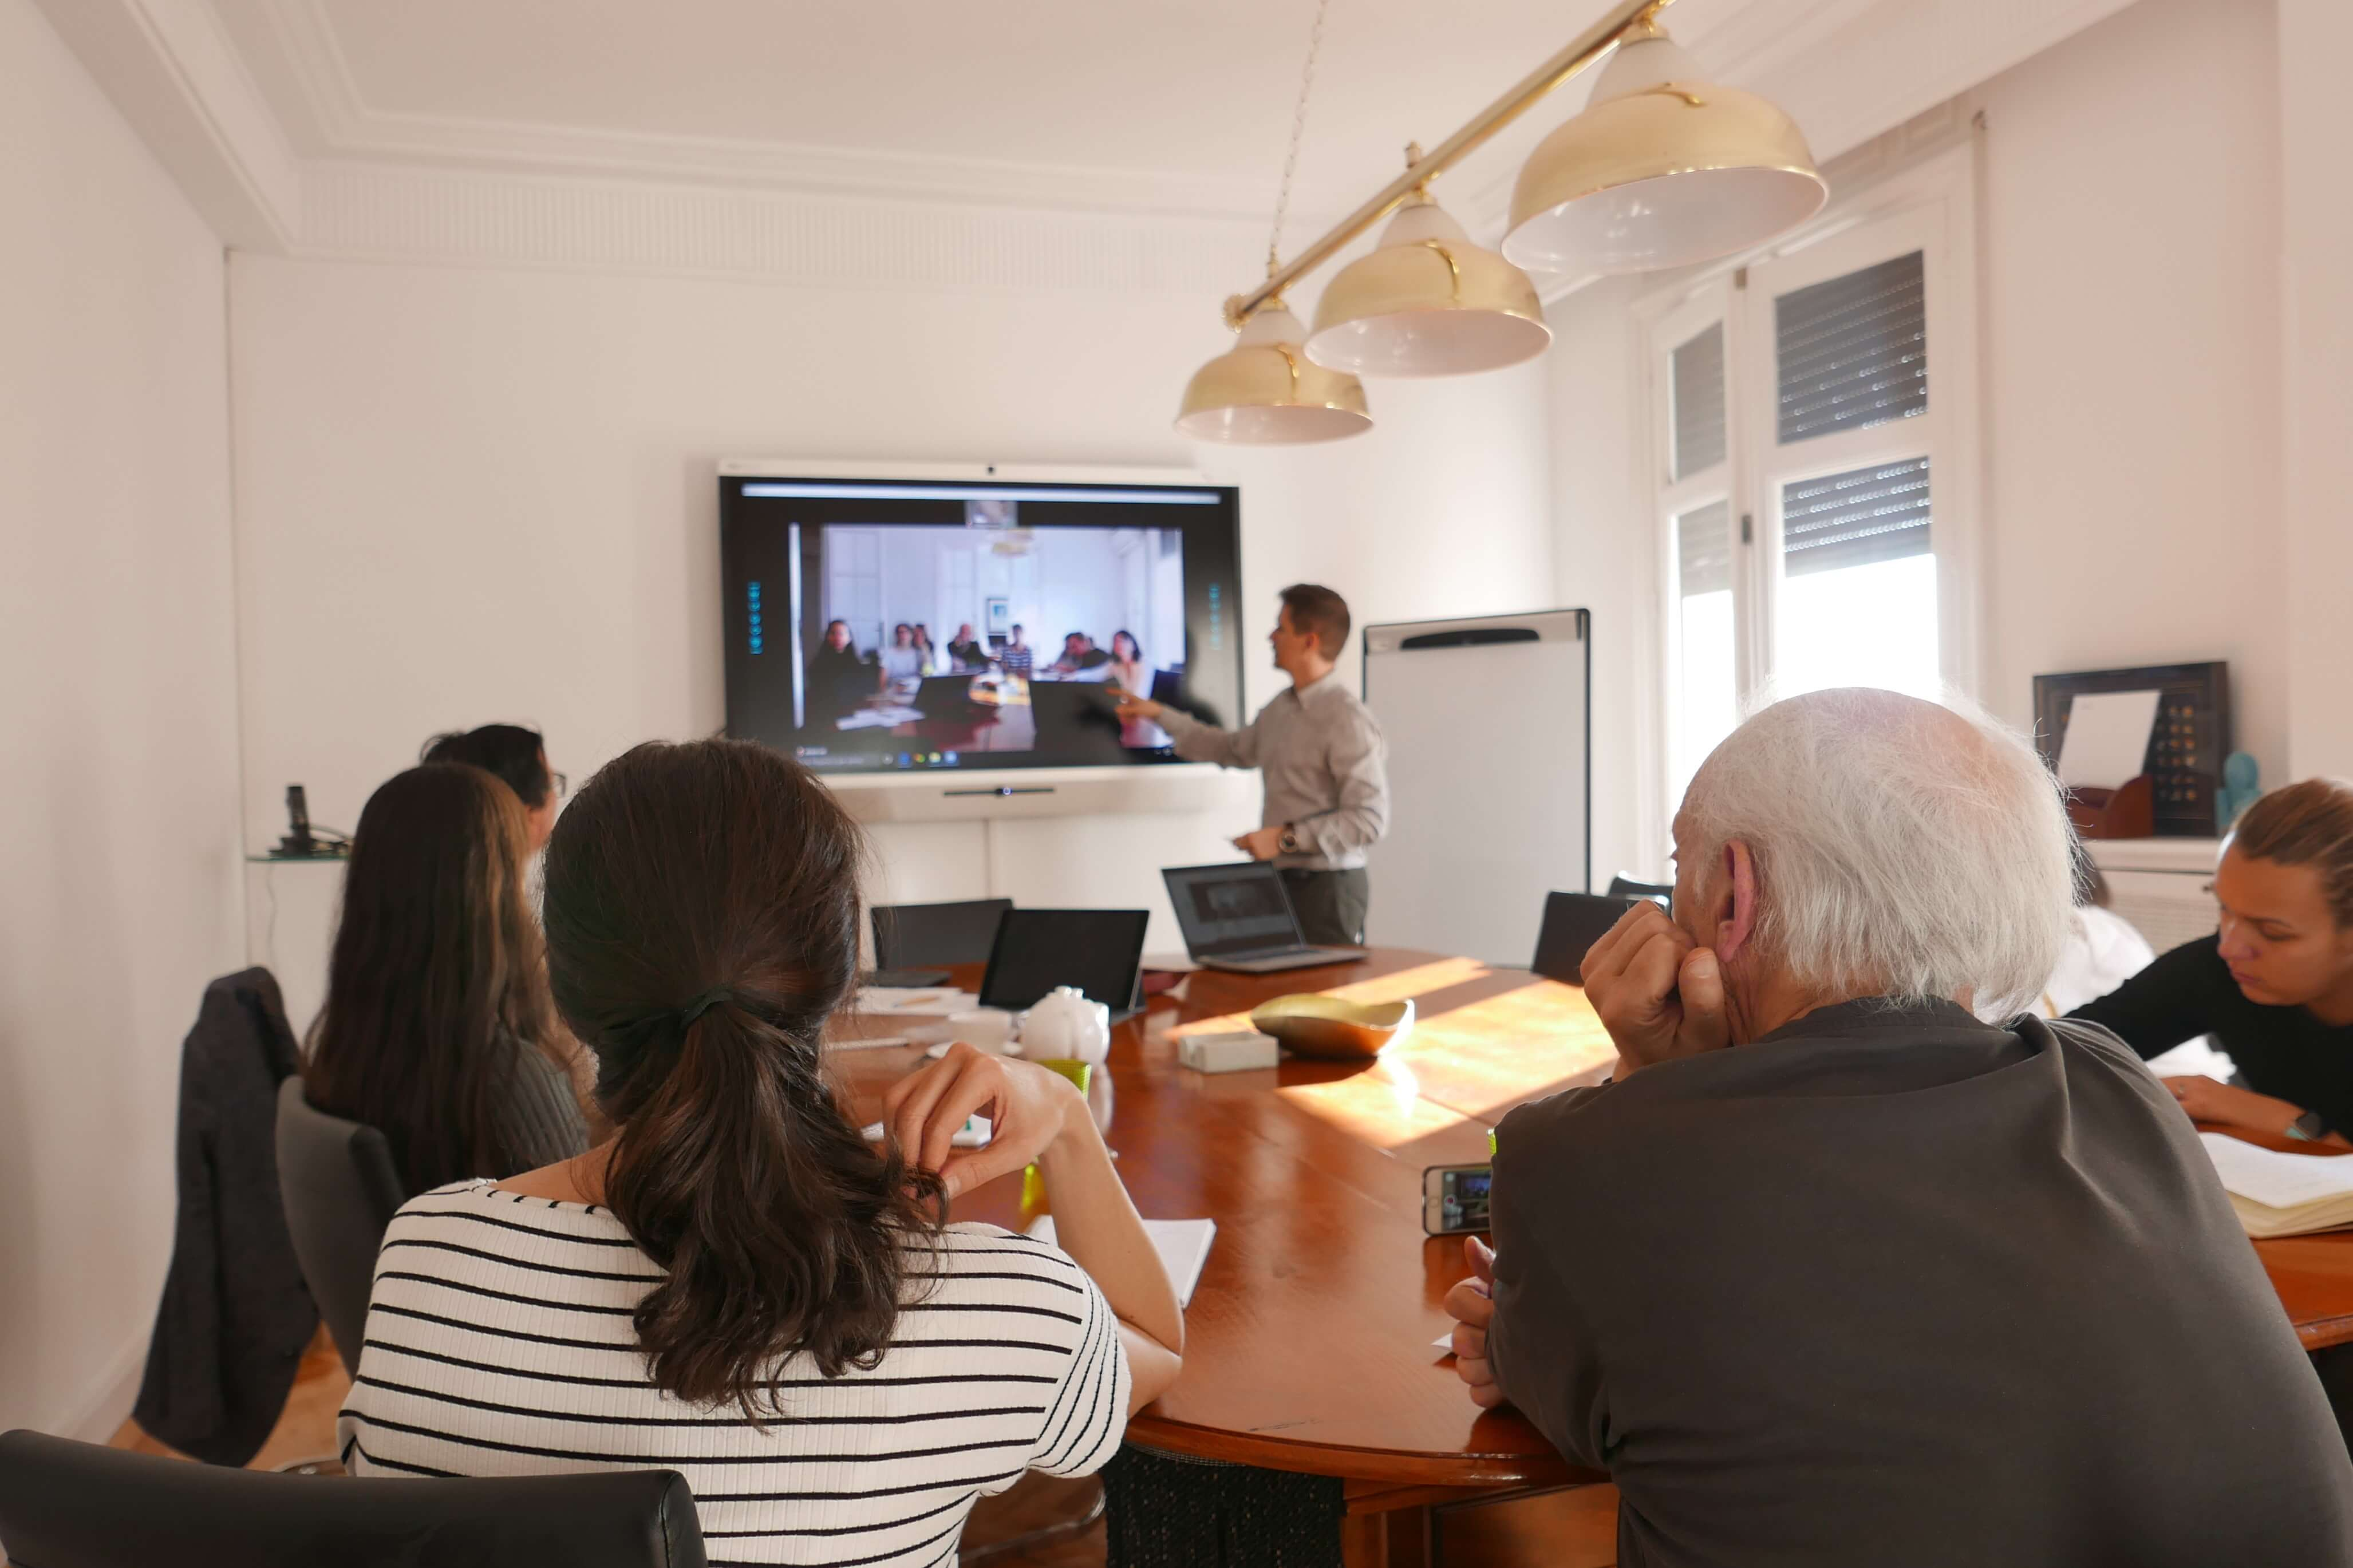 multiple location meeting with interactive display